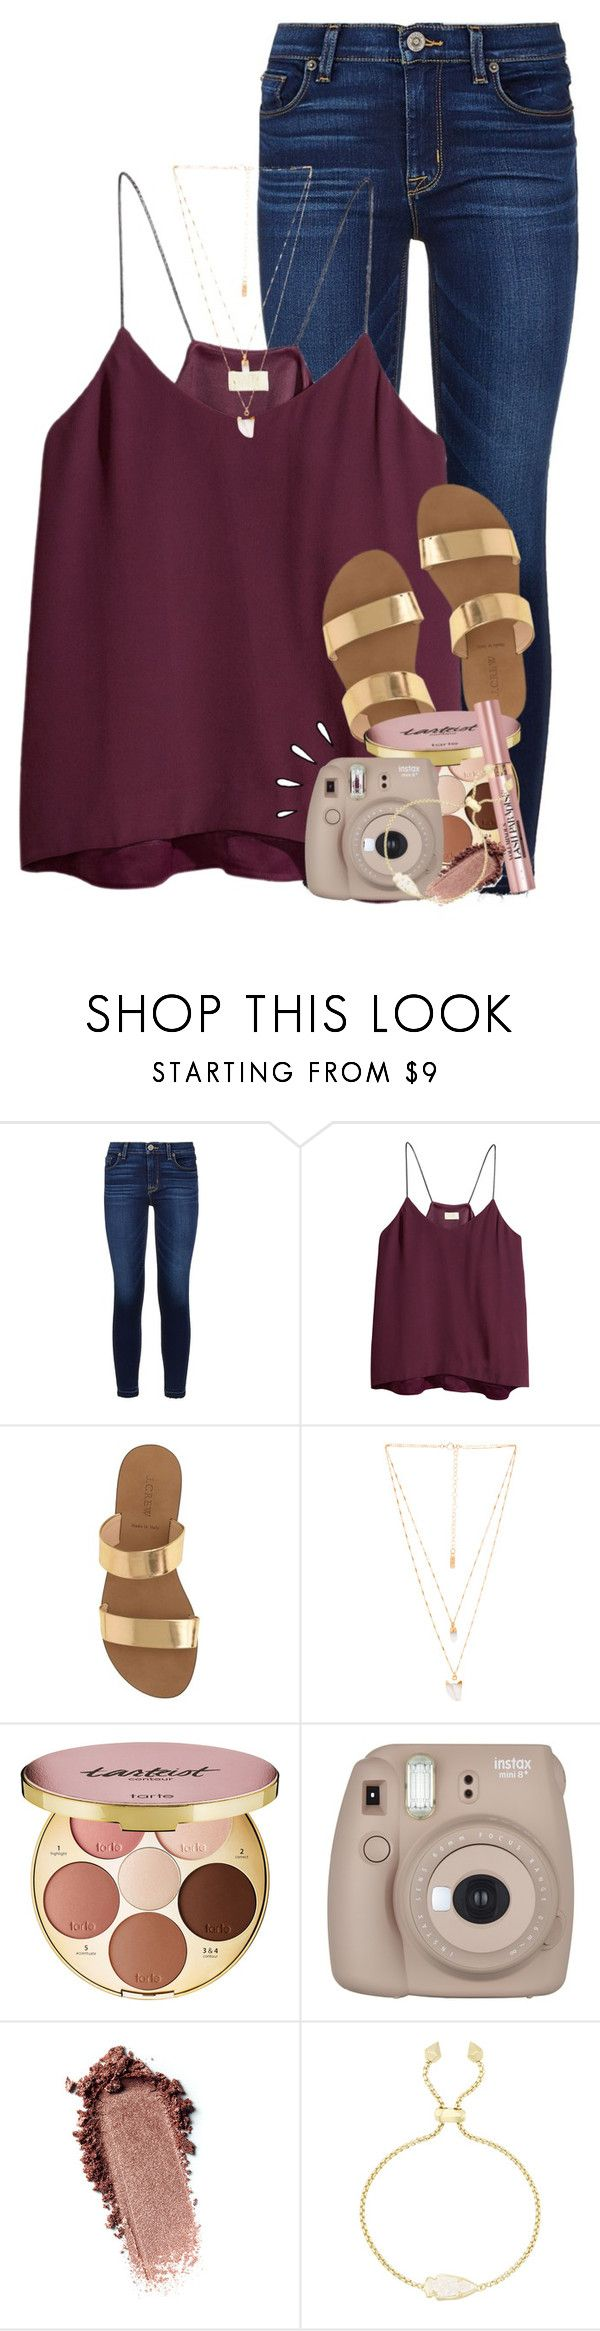 """we are beautiful like diamonds in the sky"" by emilyandella ❤ liked on Polyvore featuring Hudson, H&M, J.Crew, Natalie B, tarte, L'Oréal Paris, Fujifilm, Kendra Scott and Old Navy"